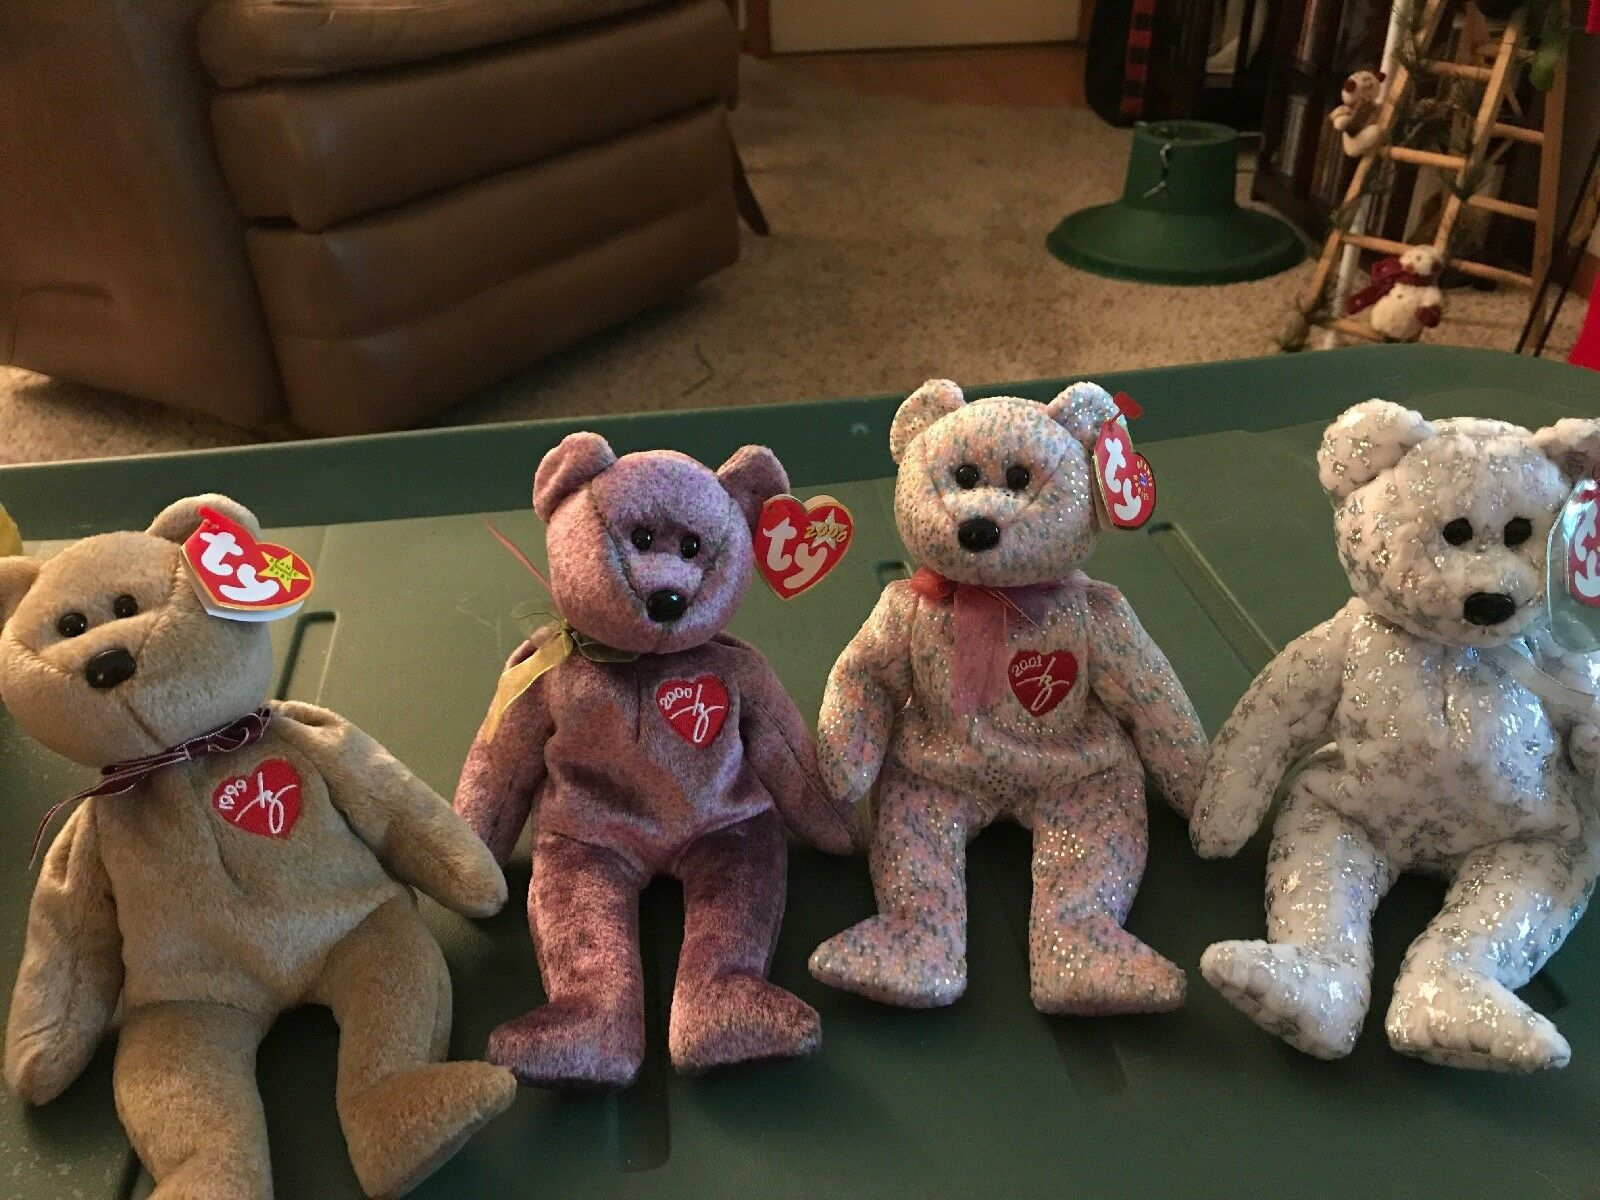 Ty Beanie Baby Signature Bears - 1999, 2000, 2001, And The Beginning Bear